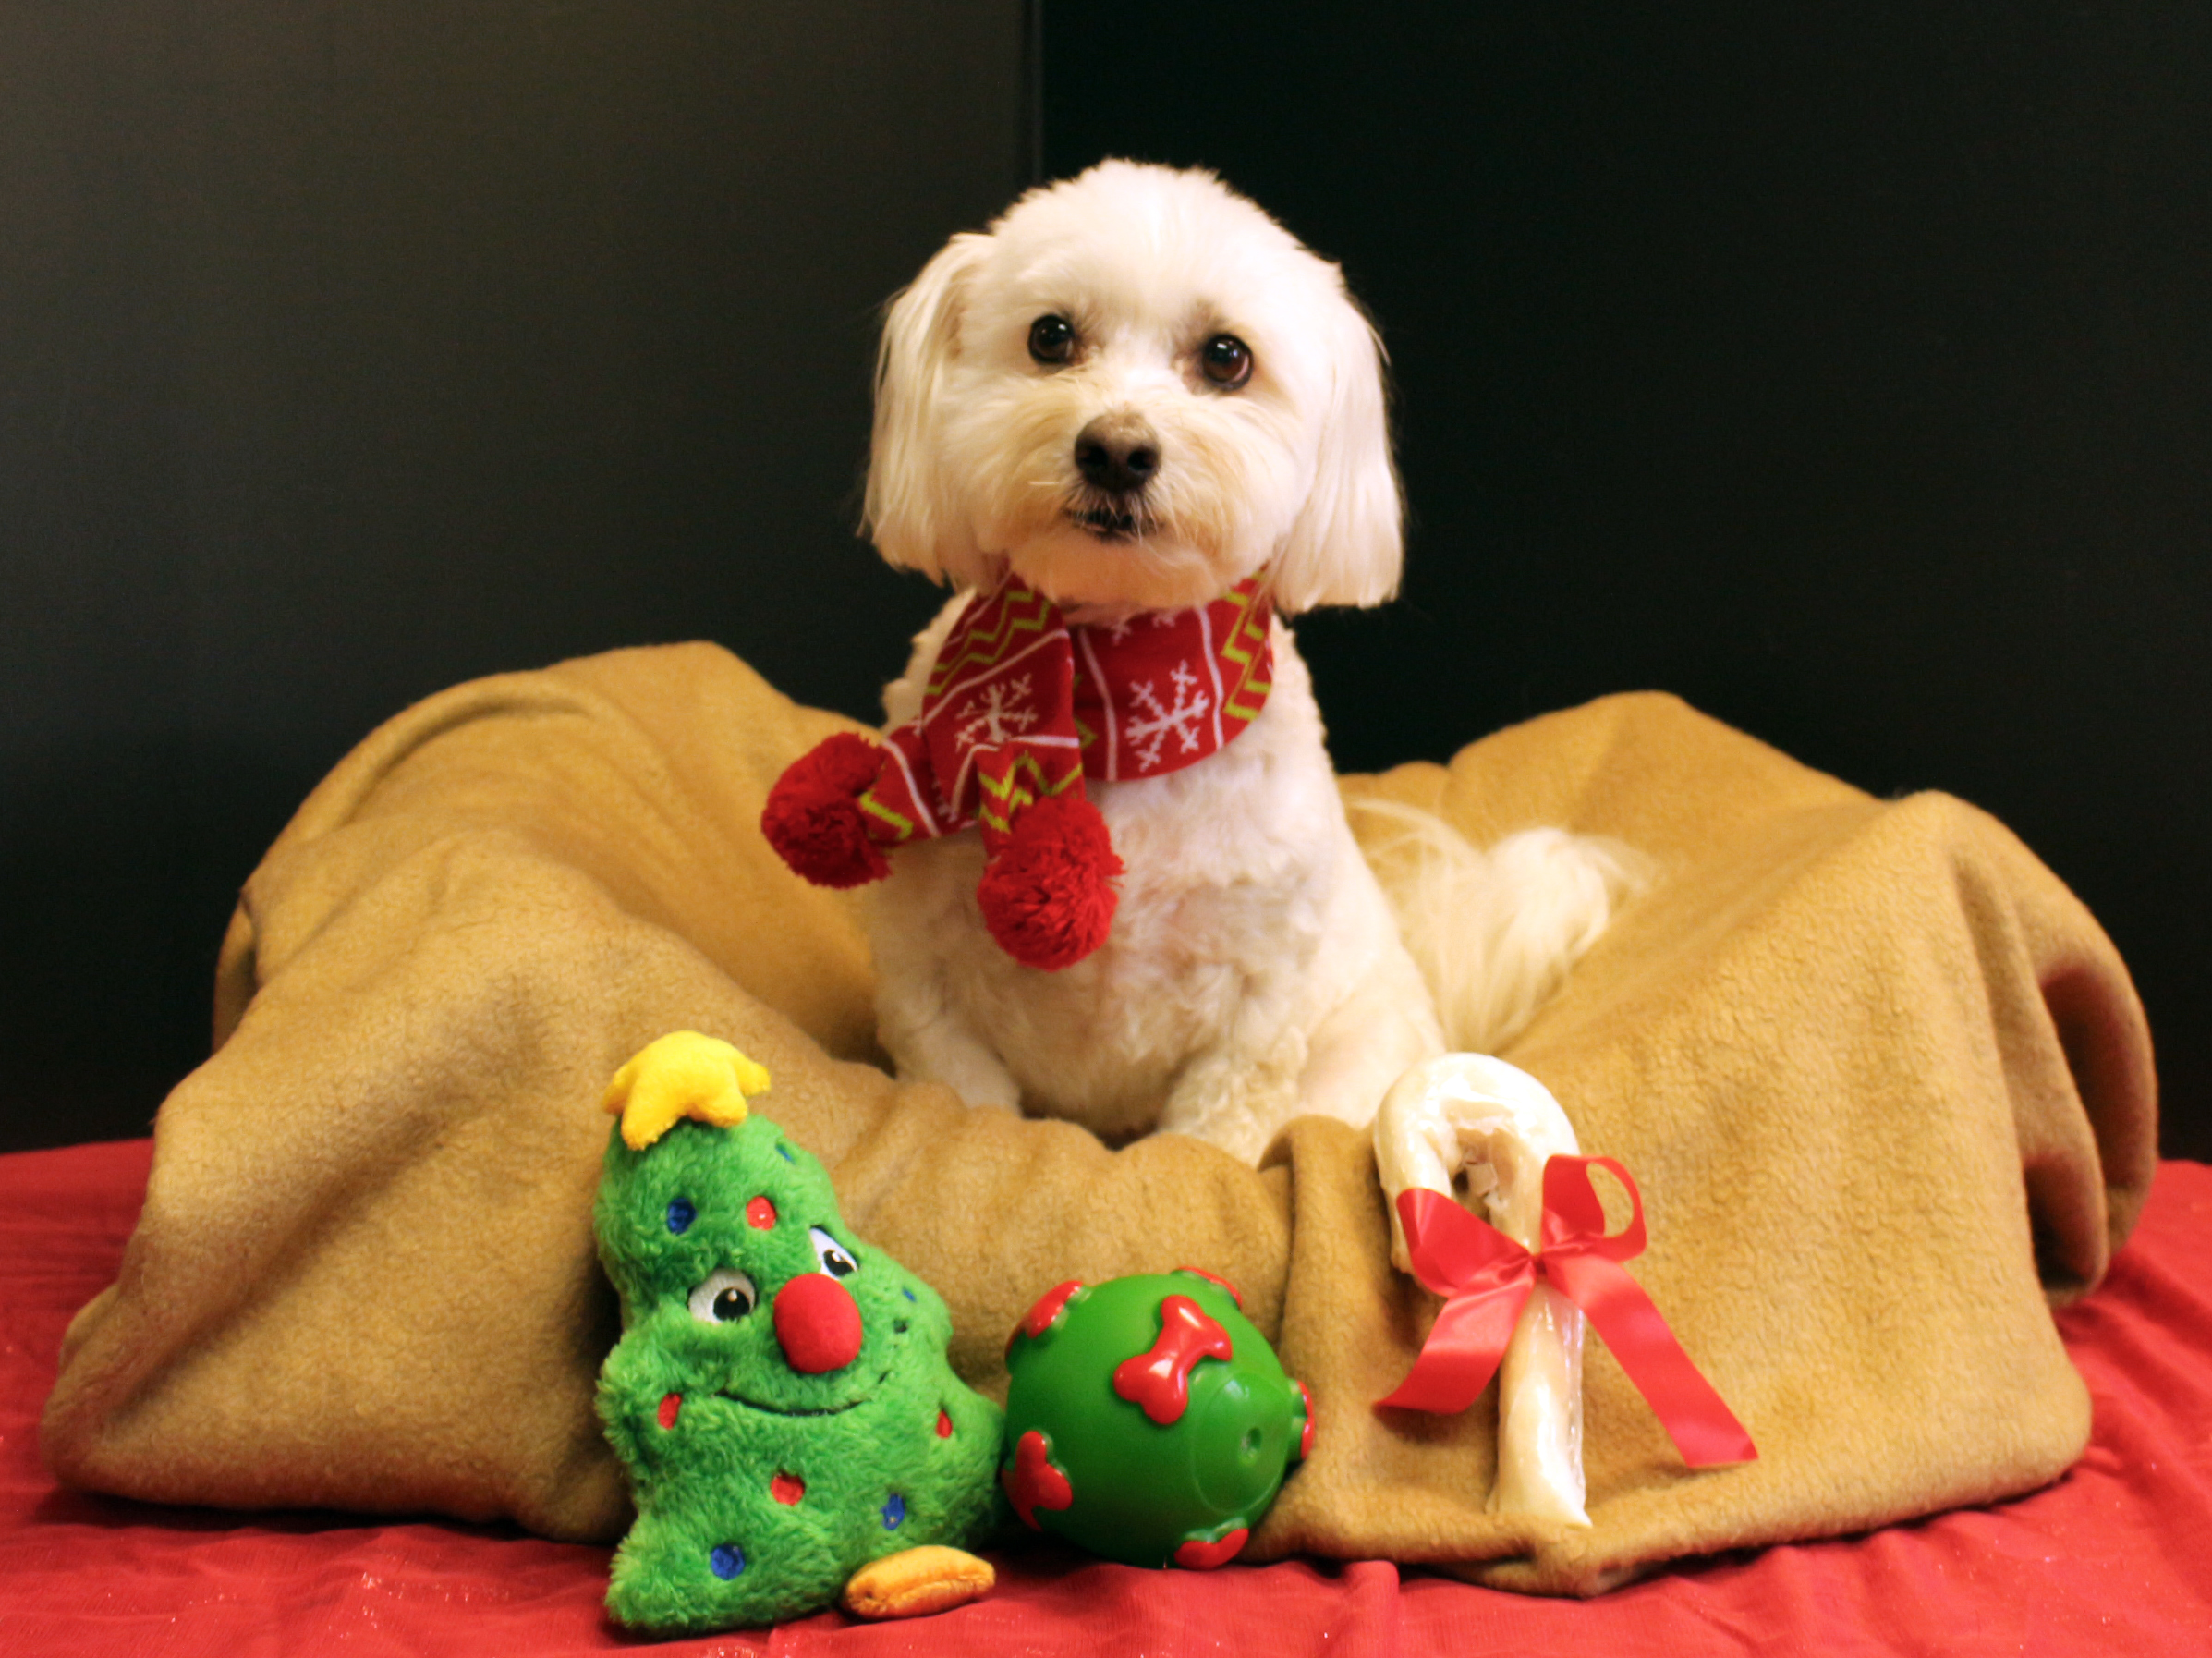 bailey w scarg and toys.jpg